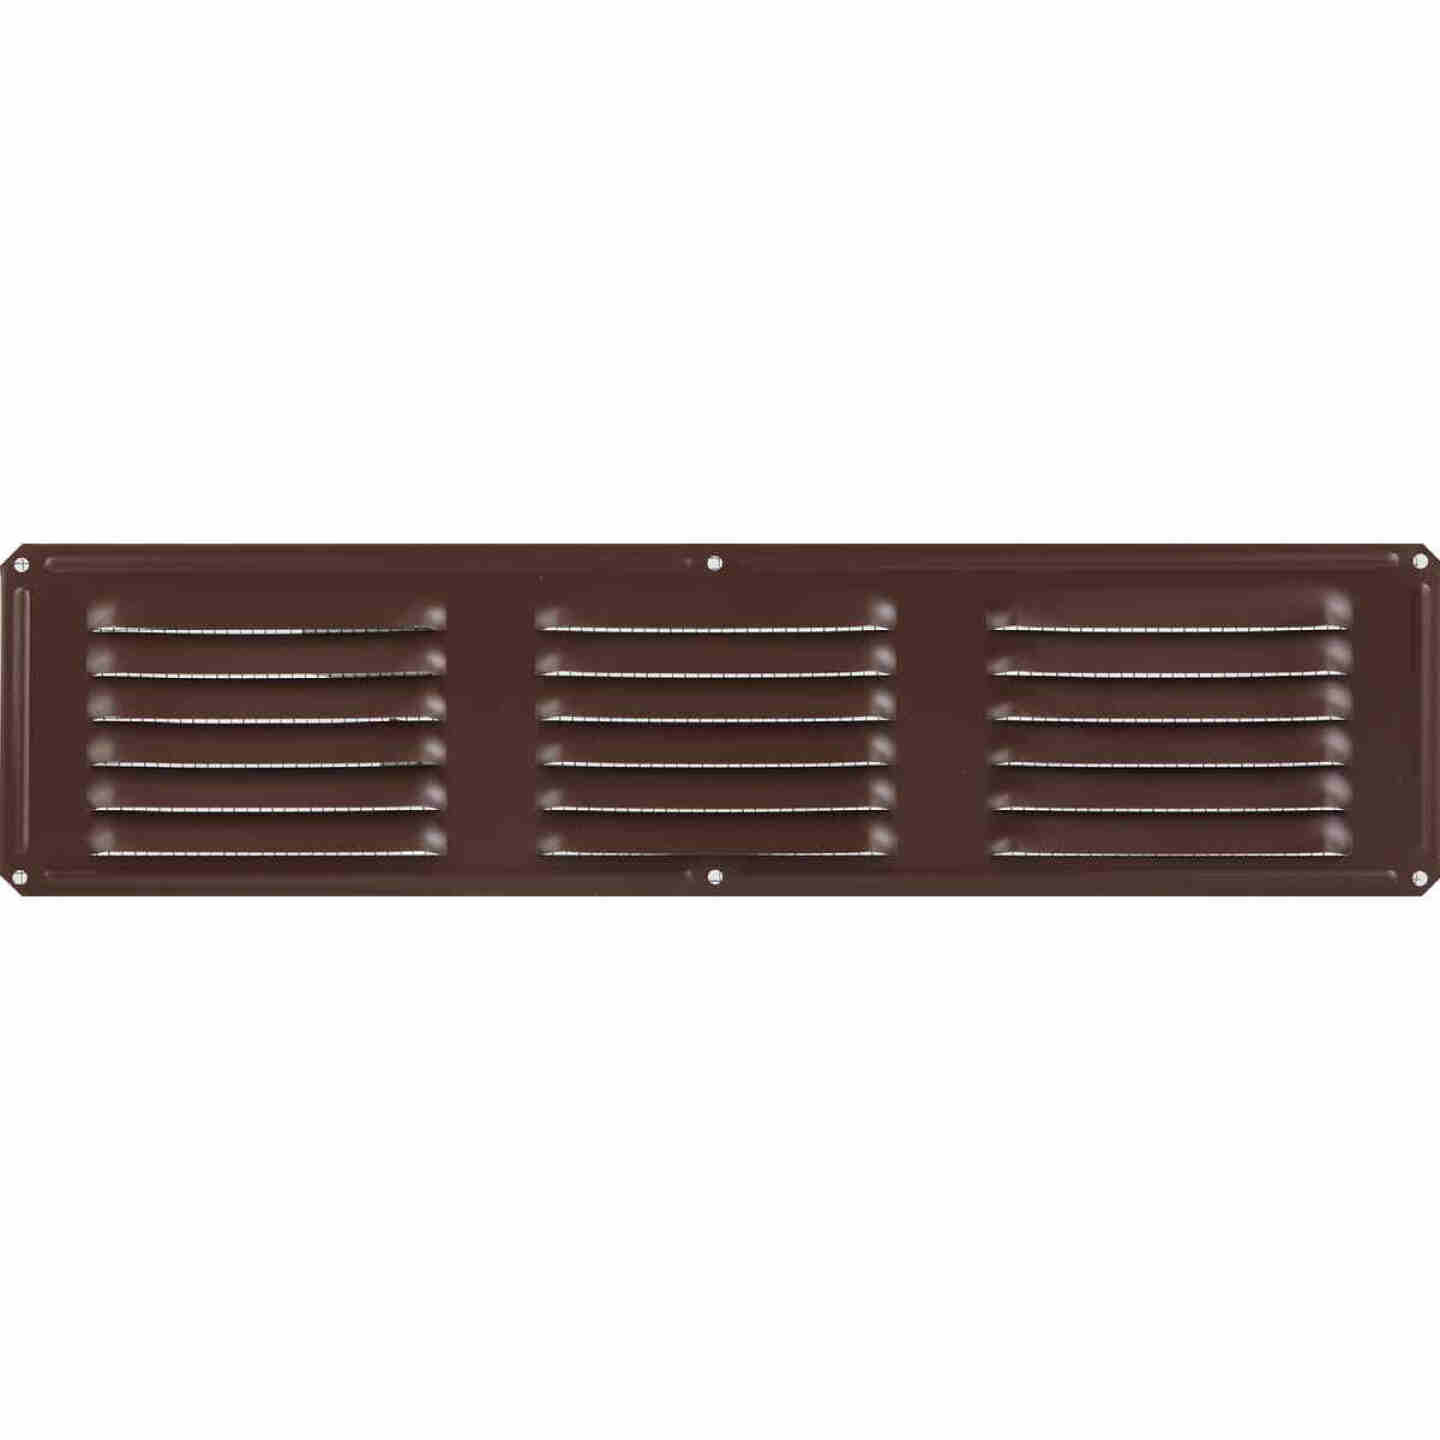 Air Vent 16 In. x 4 In. Brown Aluminum Under Eave Vent Image 2